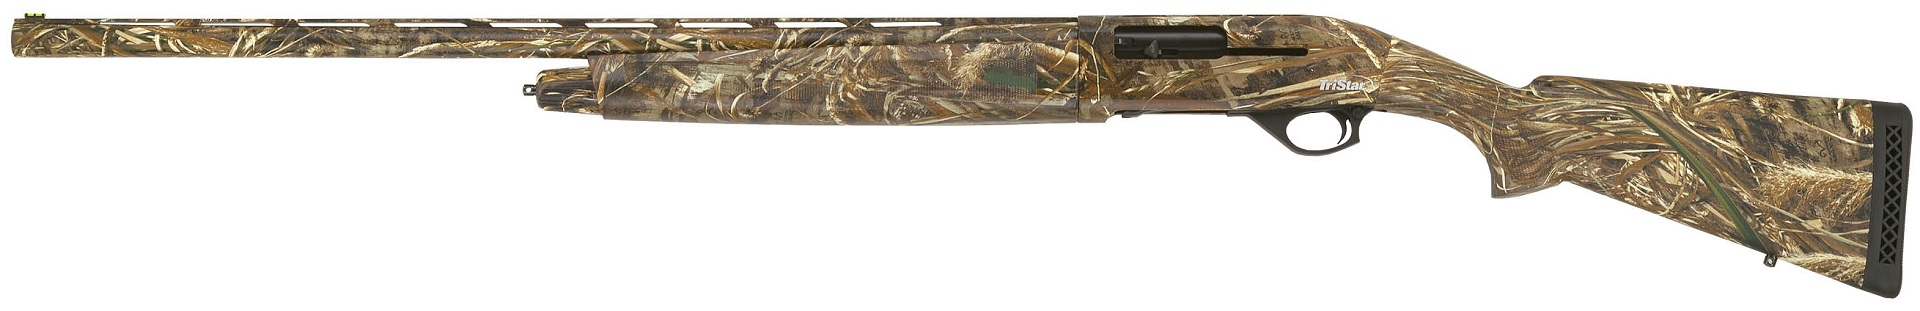 TriStar Sporting Arms Viper G2 Left Hand 12 Gauge